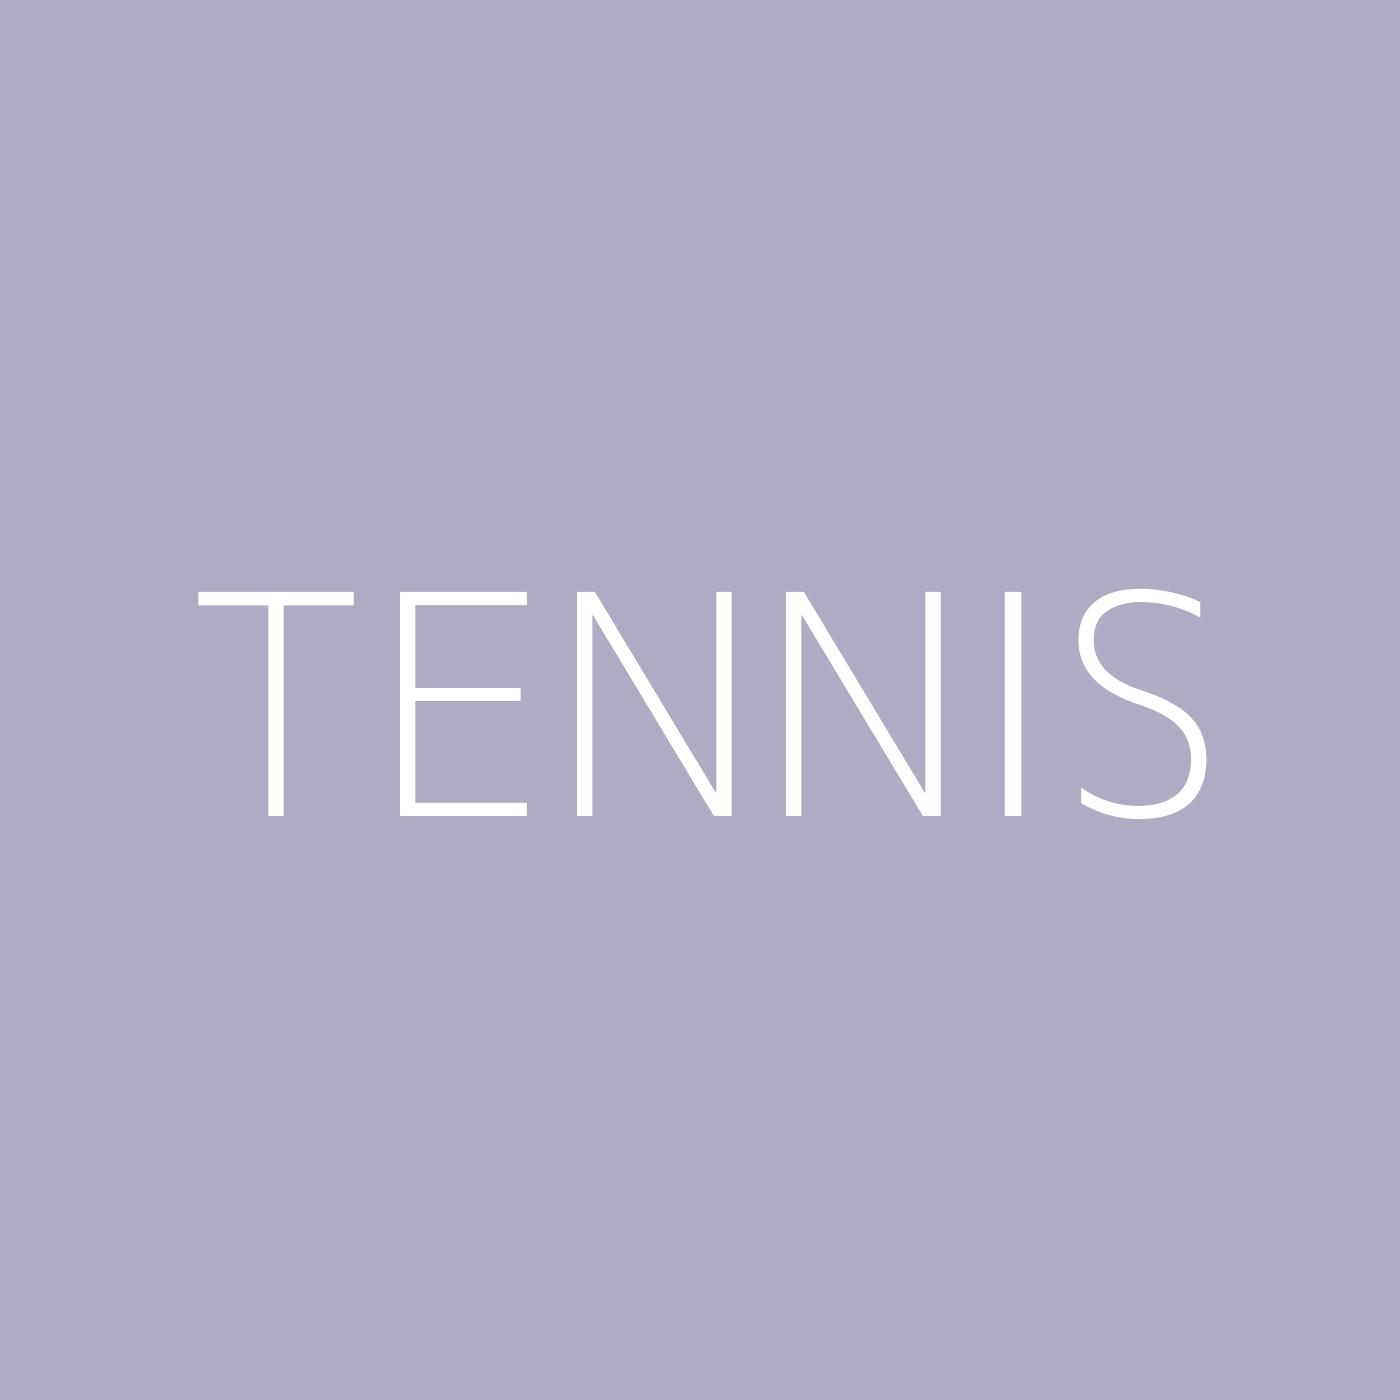 Tennis Playlist Artwork